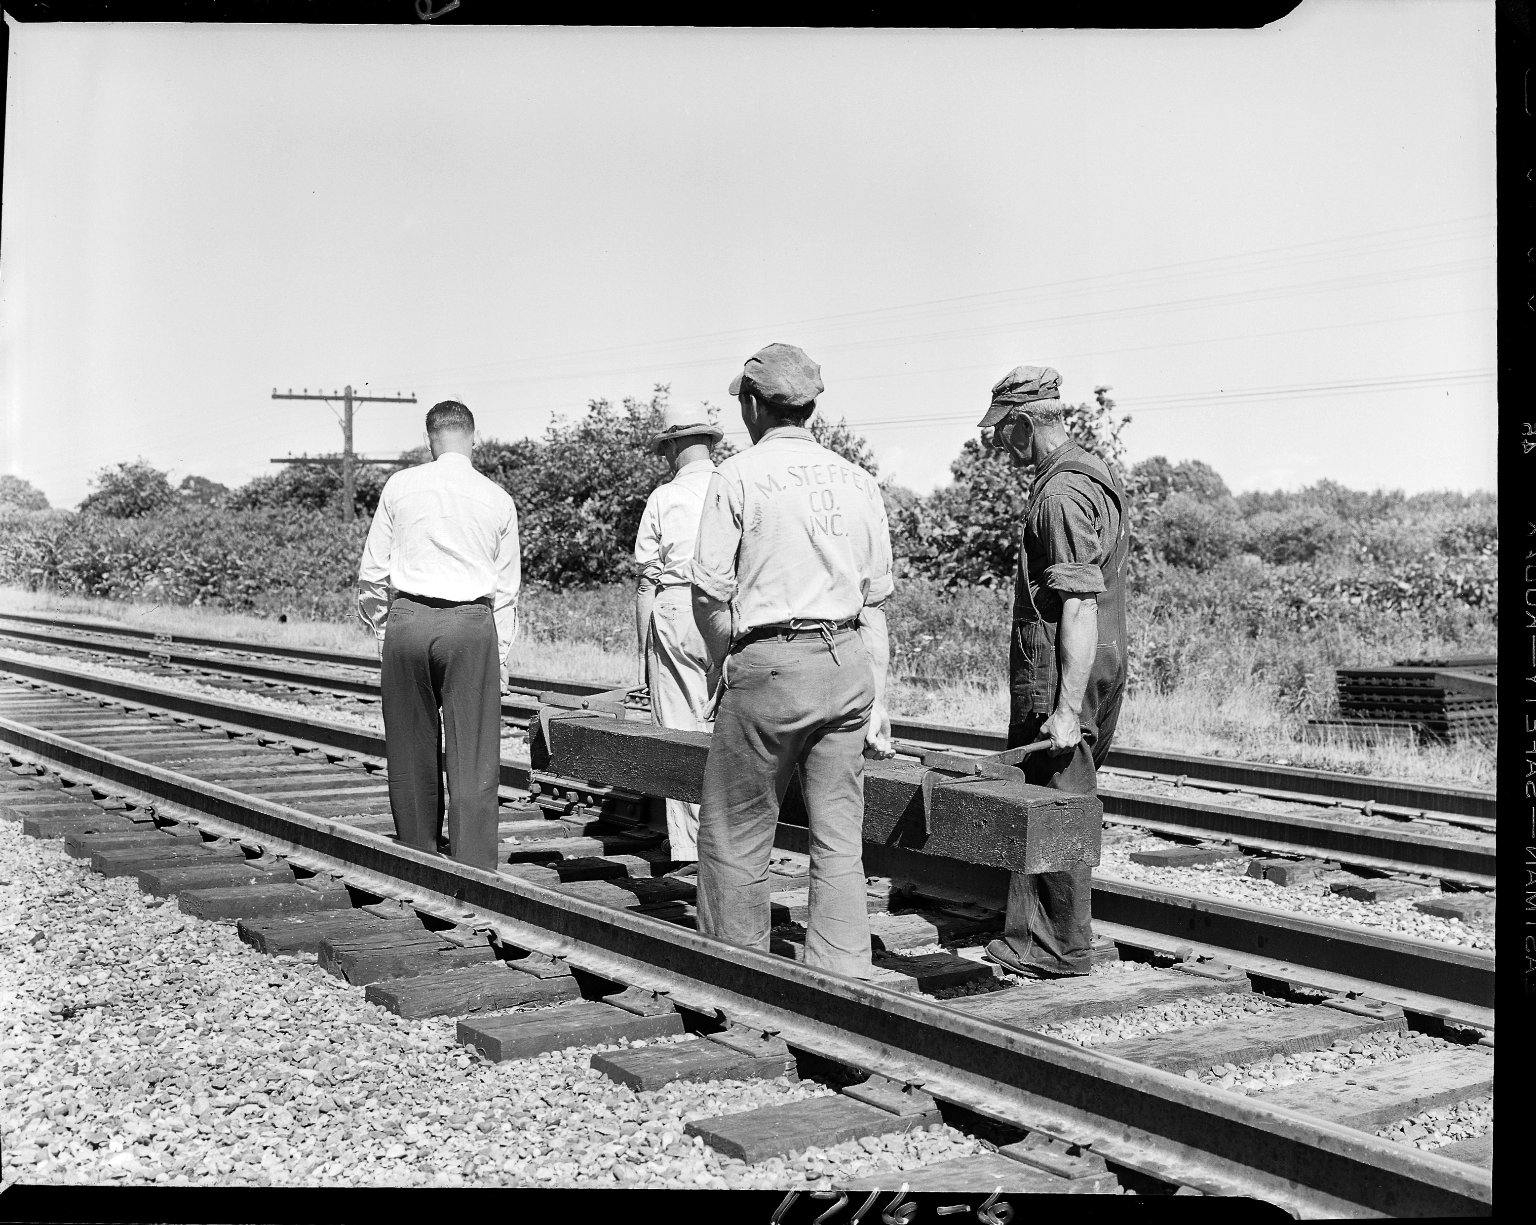 Men moving railroad tie on railroad tracks